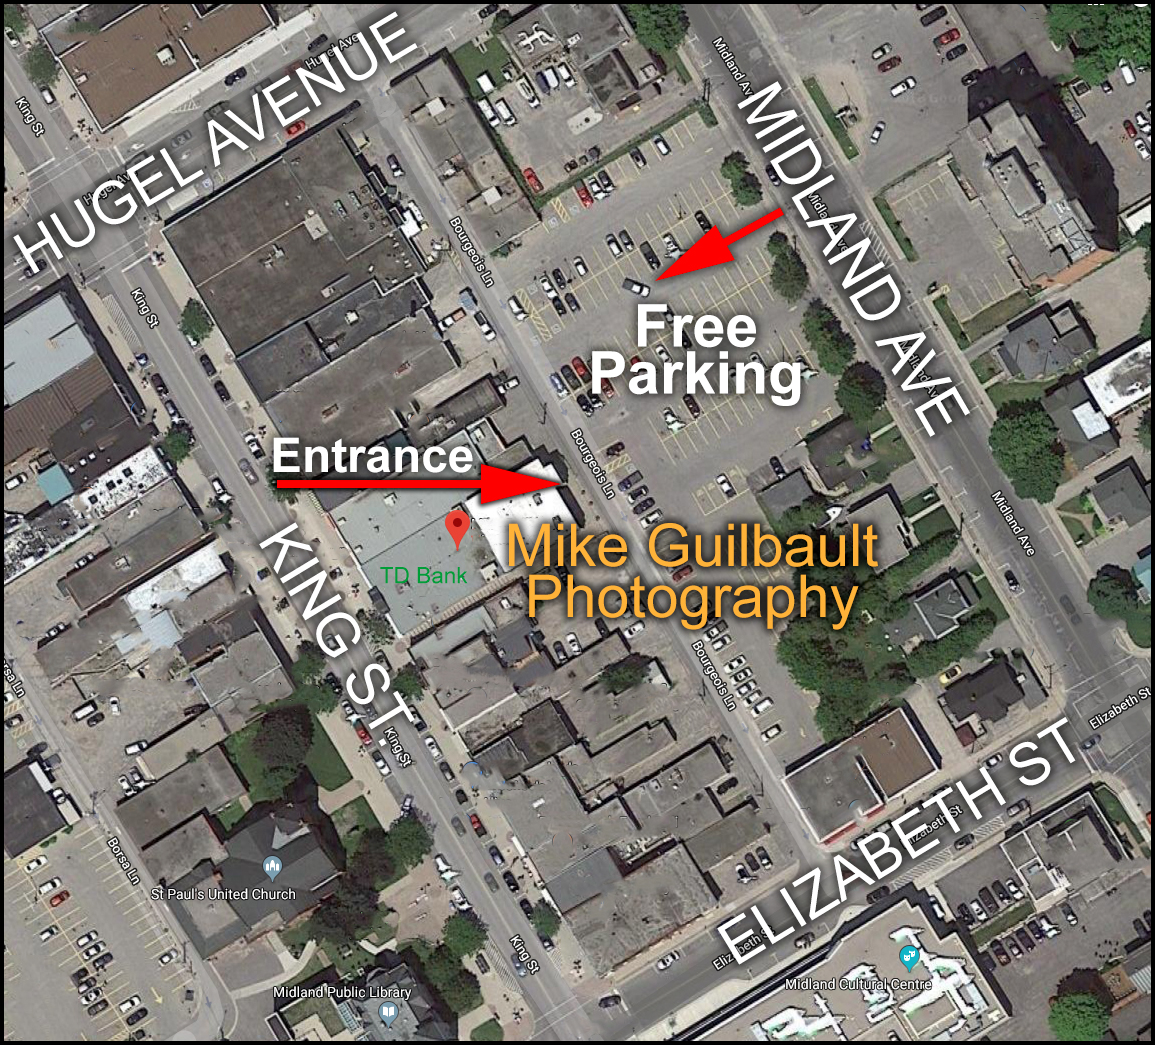 CLICK TO ENLARGE: Access the free, municipal parking lot off Midland Avenue, between Elizabeth St. and Hugel Avenue. Access from King Street via the ally between TD Canada Trust and Bell.